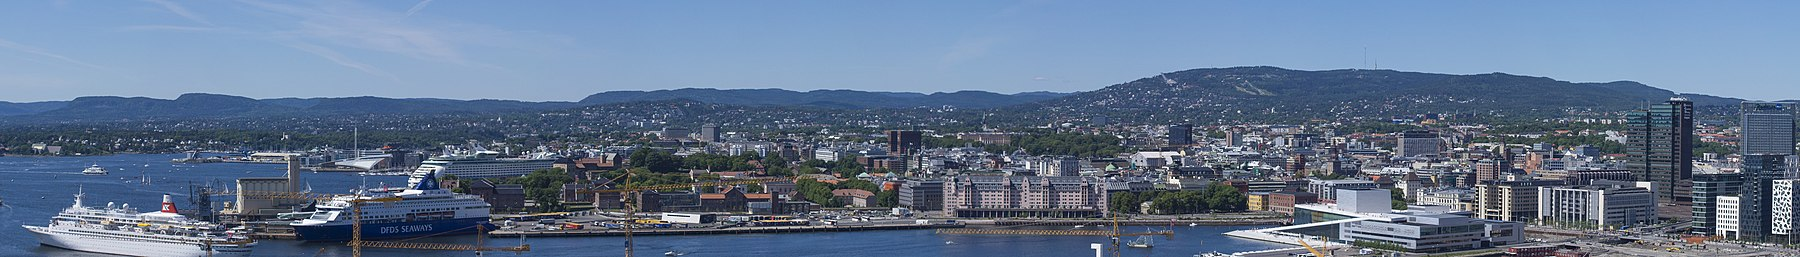 Oslo,Norway (cropped).jpg